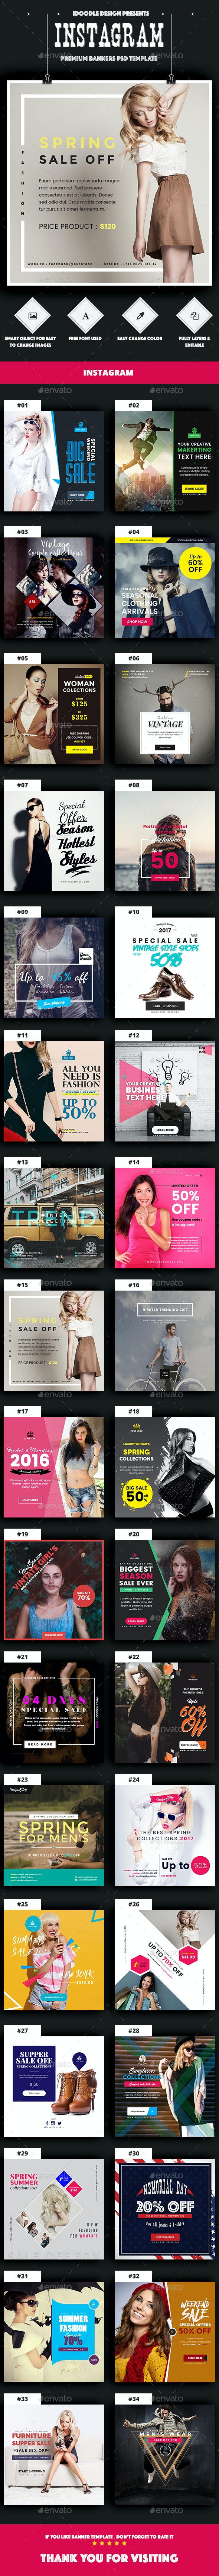 Promotion Instagram Banners Ad - 34 PSD [Update New Size] - Miscellaneous Social Media